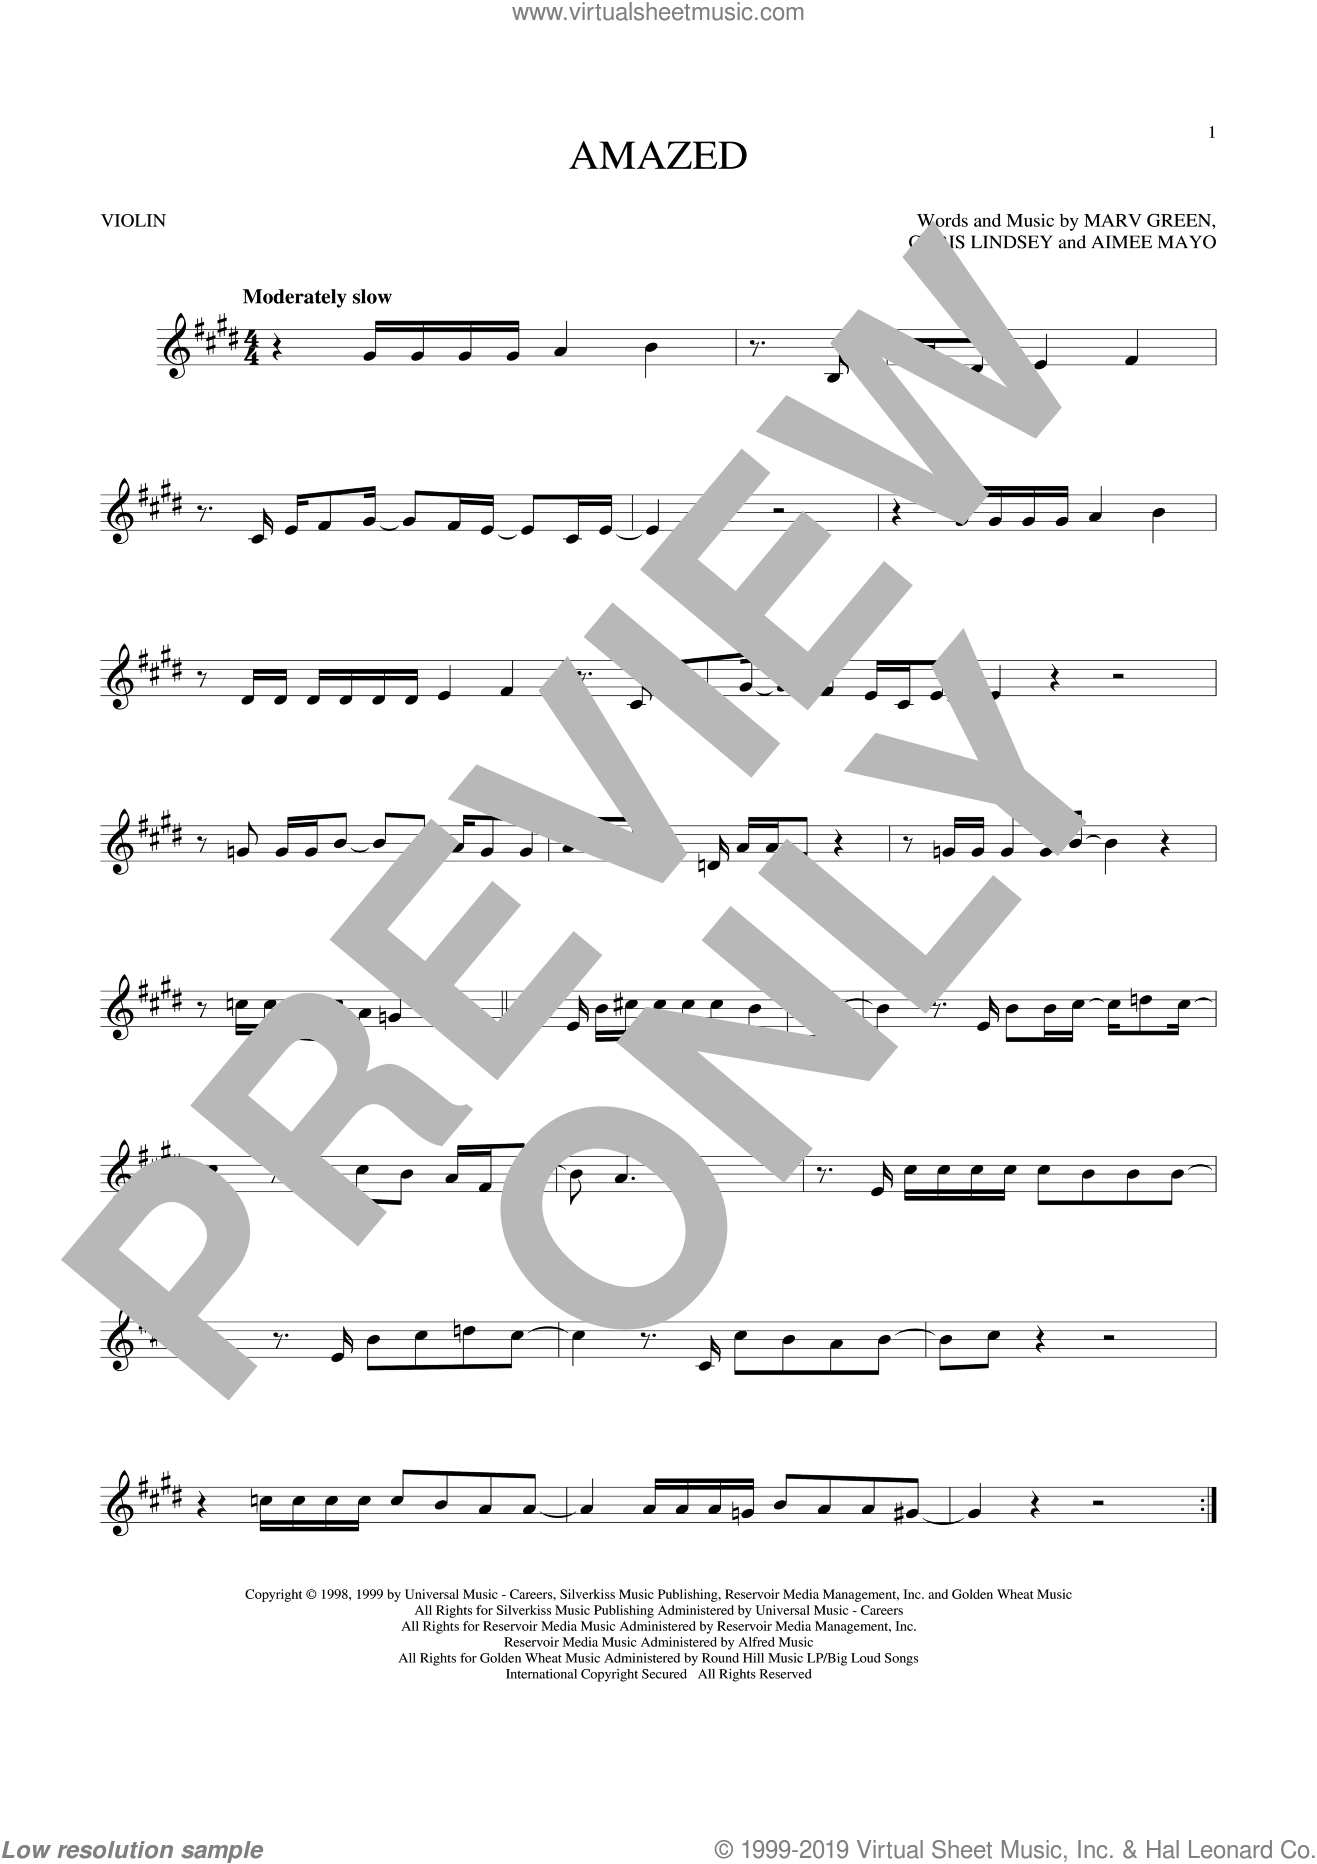 Amazed sheet music for violin solo by Lonestar, Aimee Mayo, Chris Lindsey and Marv Green, wedding score, intermediate skill level